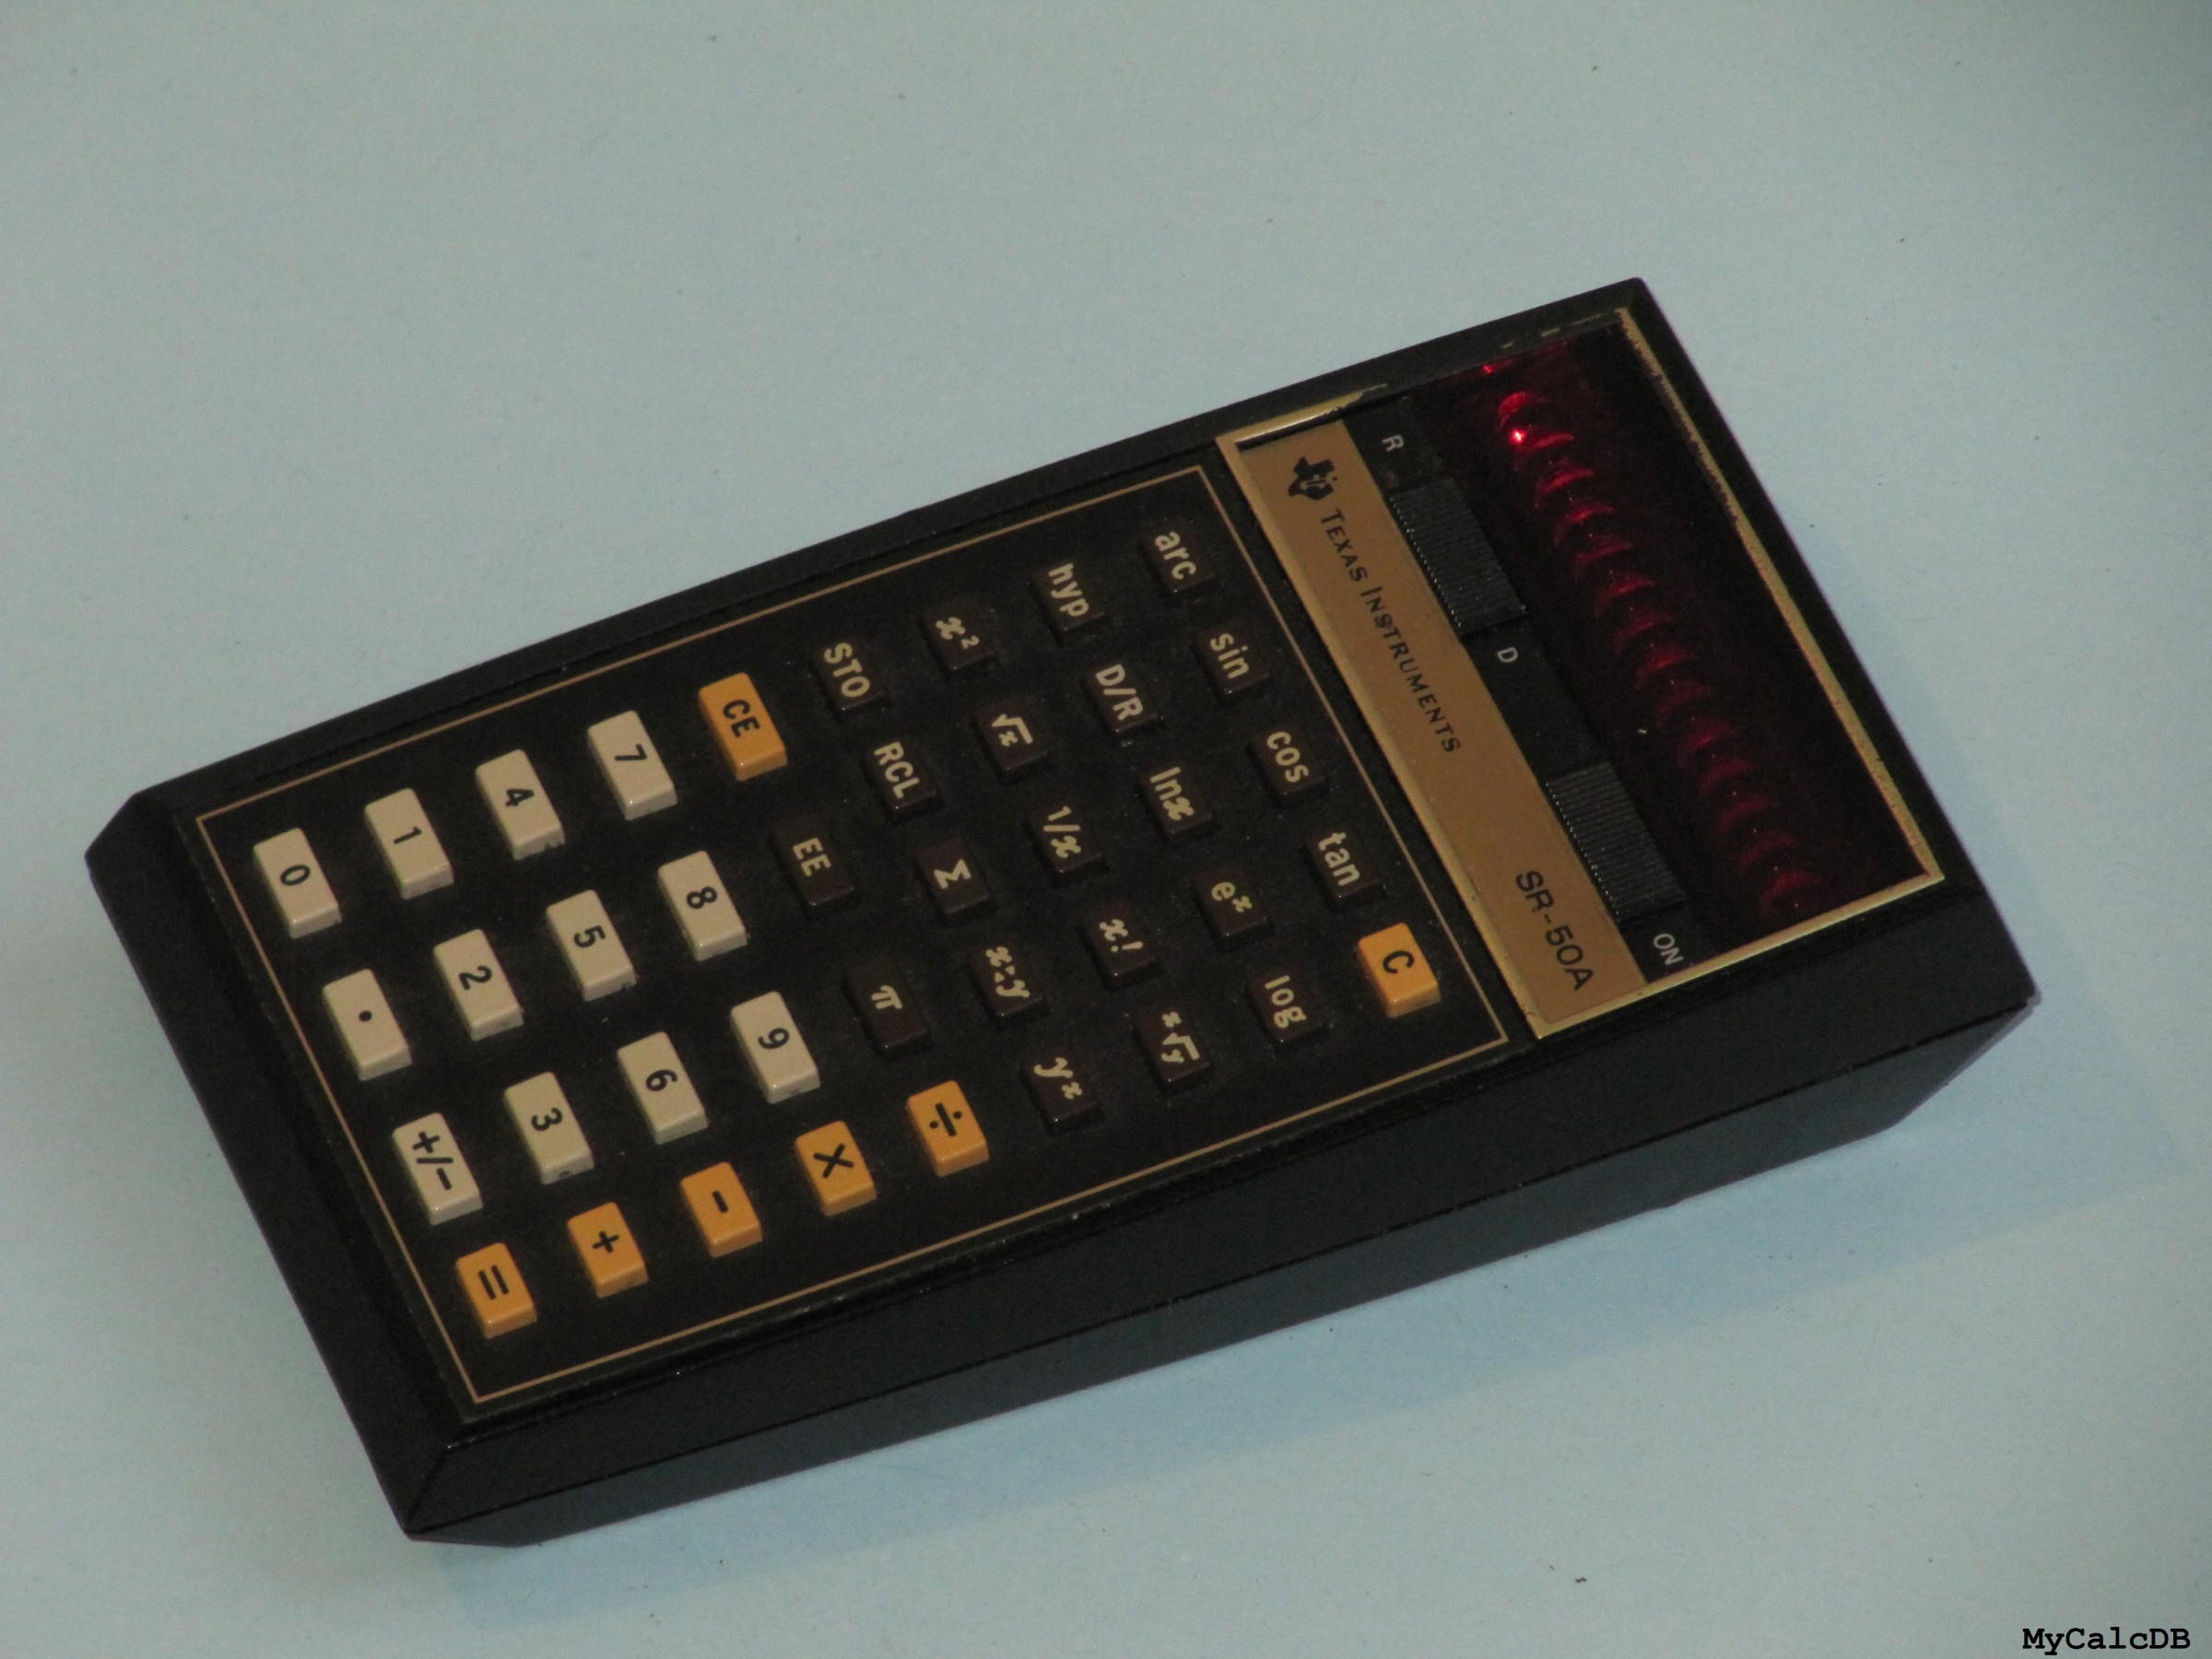 Texas Instruments SR-50A